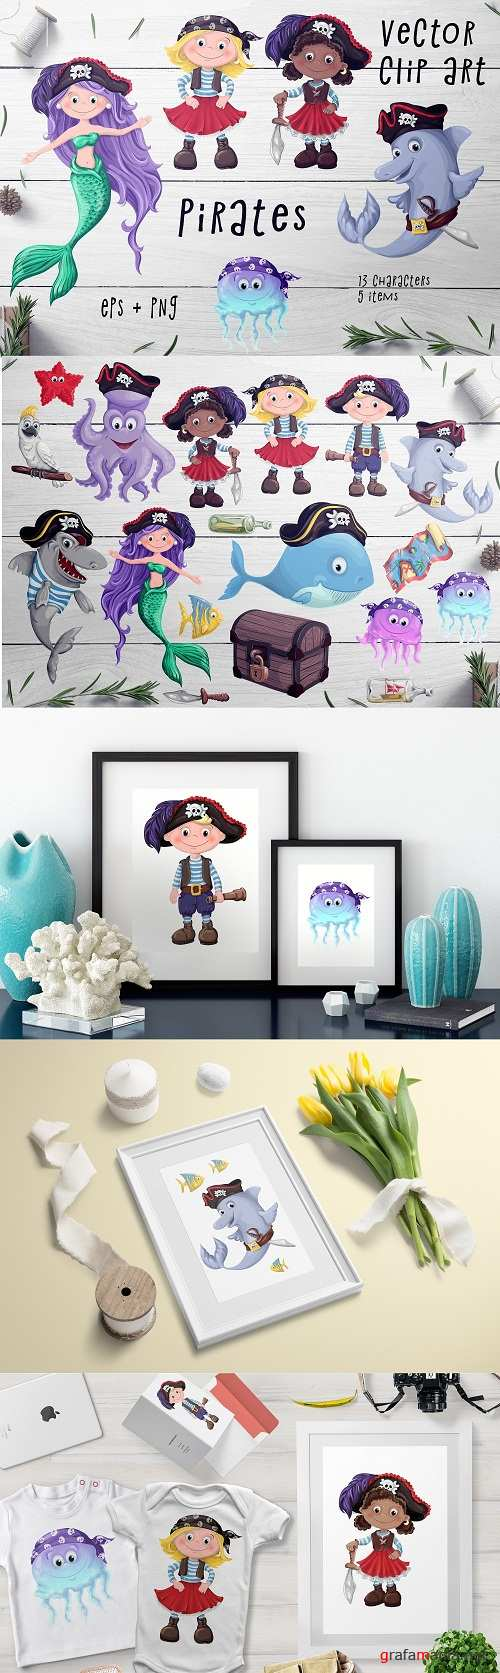 Pirates Set – Vector Clip art - 2379145